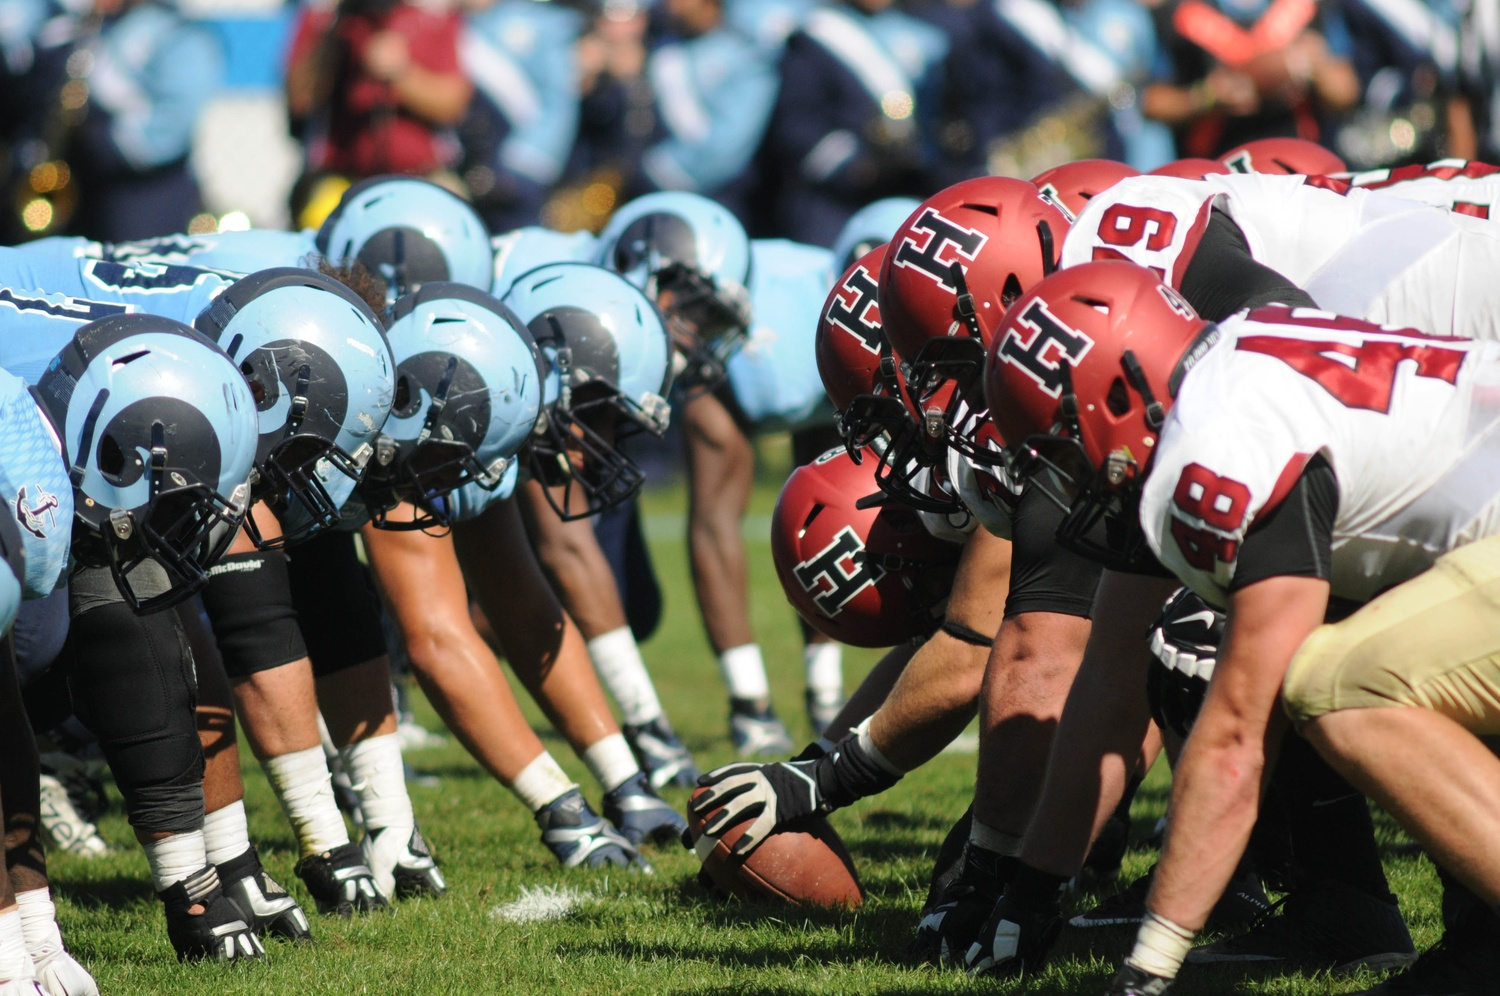 The Harvard football team notched its 15th straight win in its season opener at the University of Rhode Island by a score of 41-10.